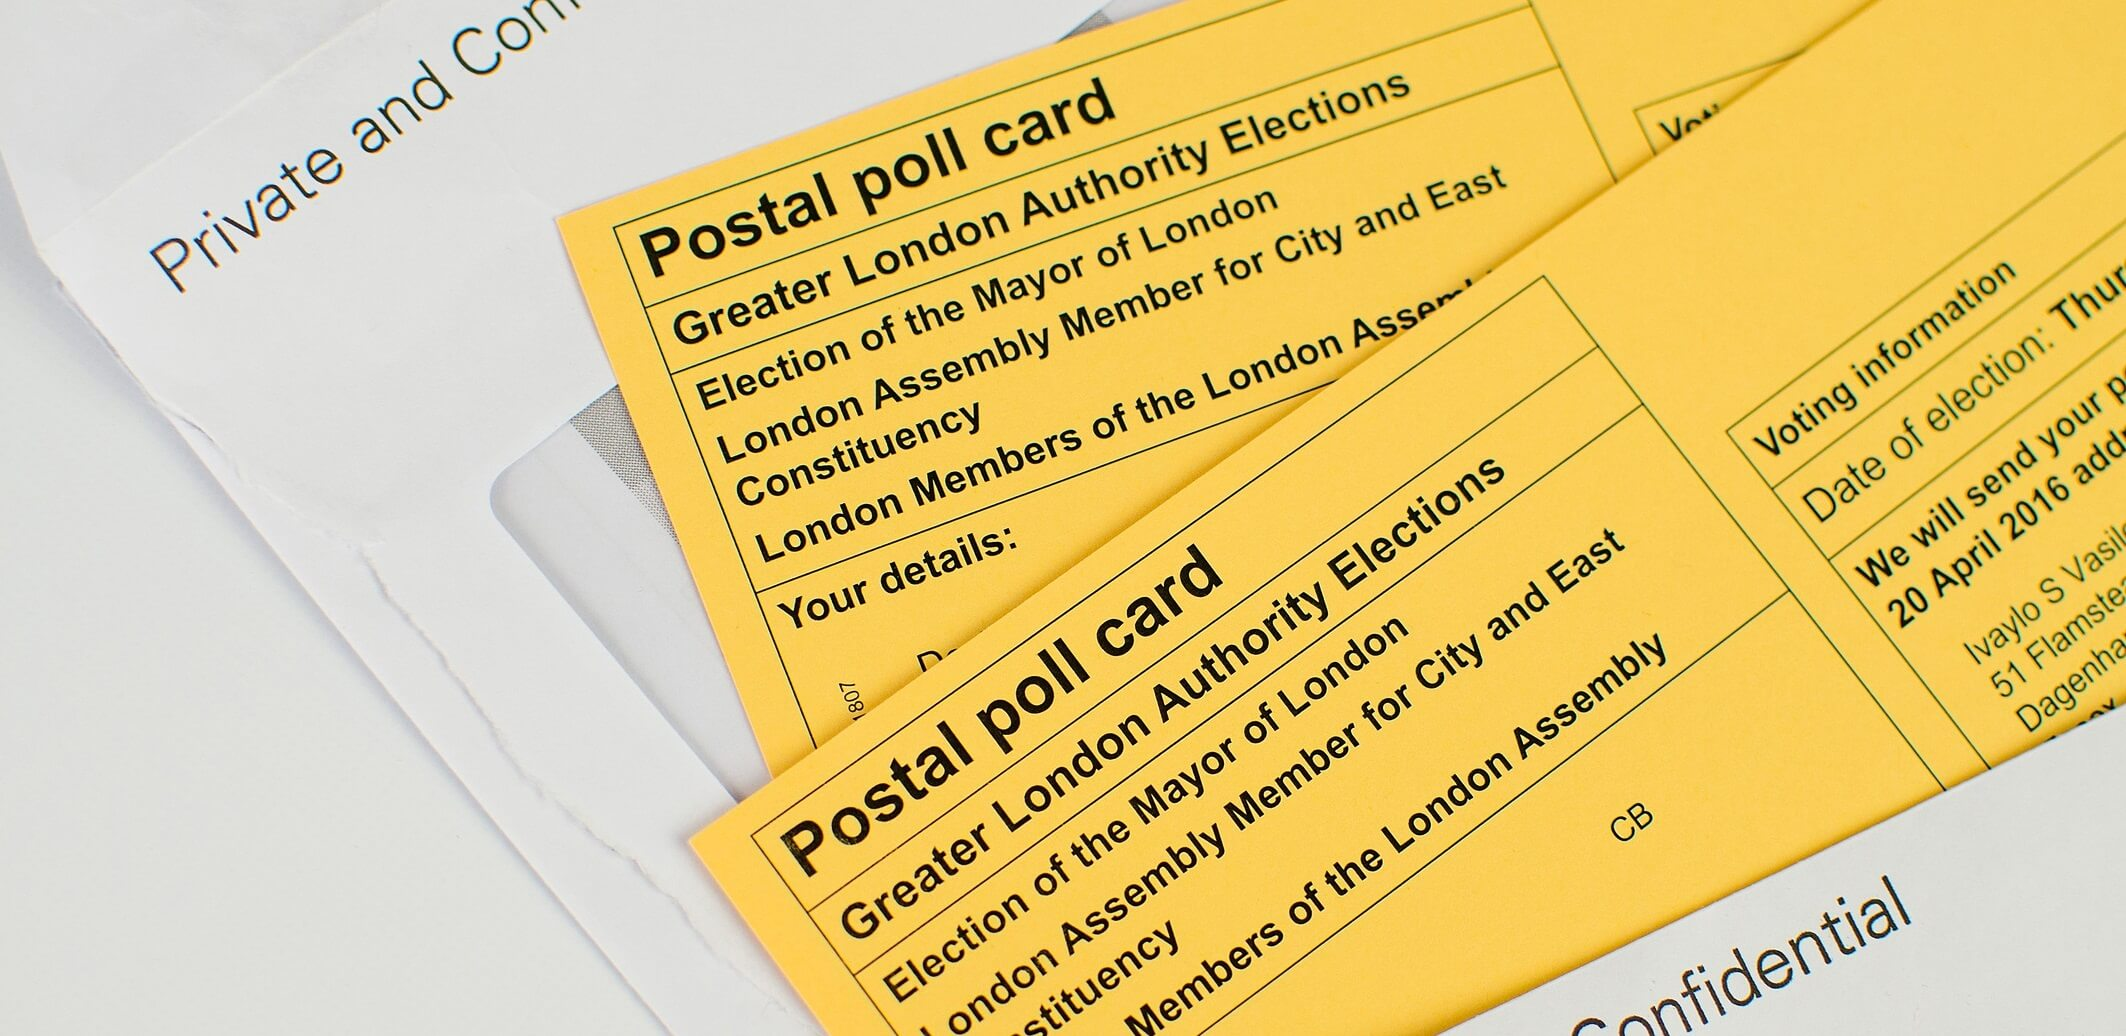 updating electoral roll information